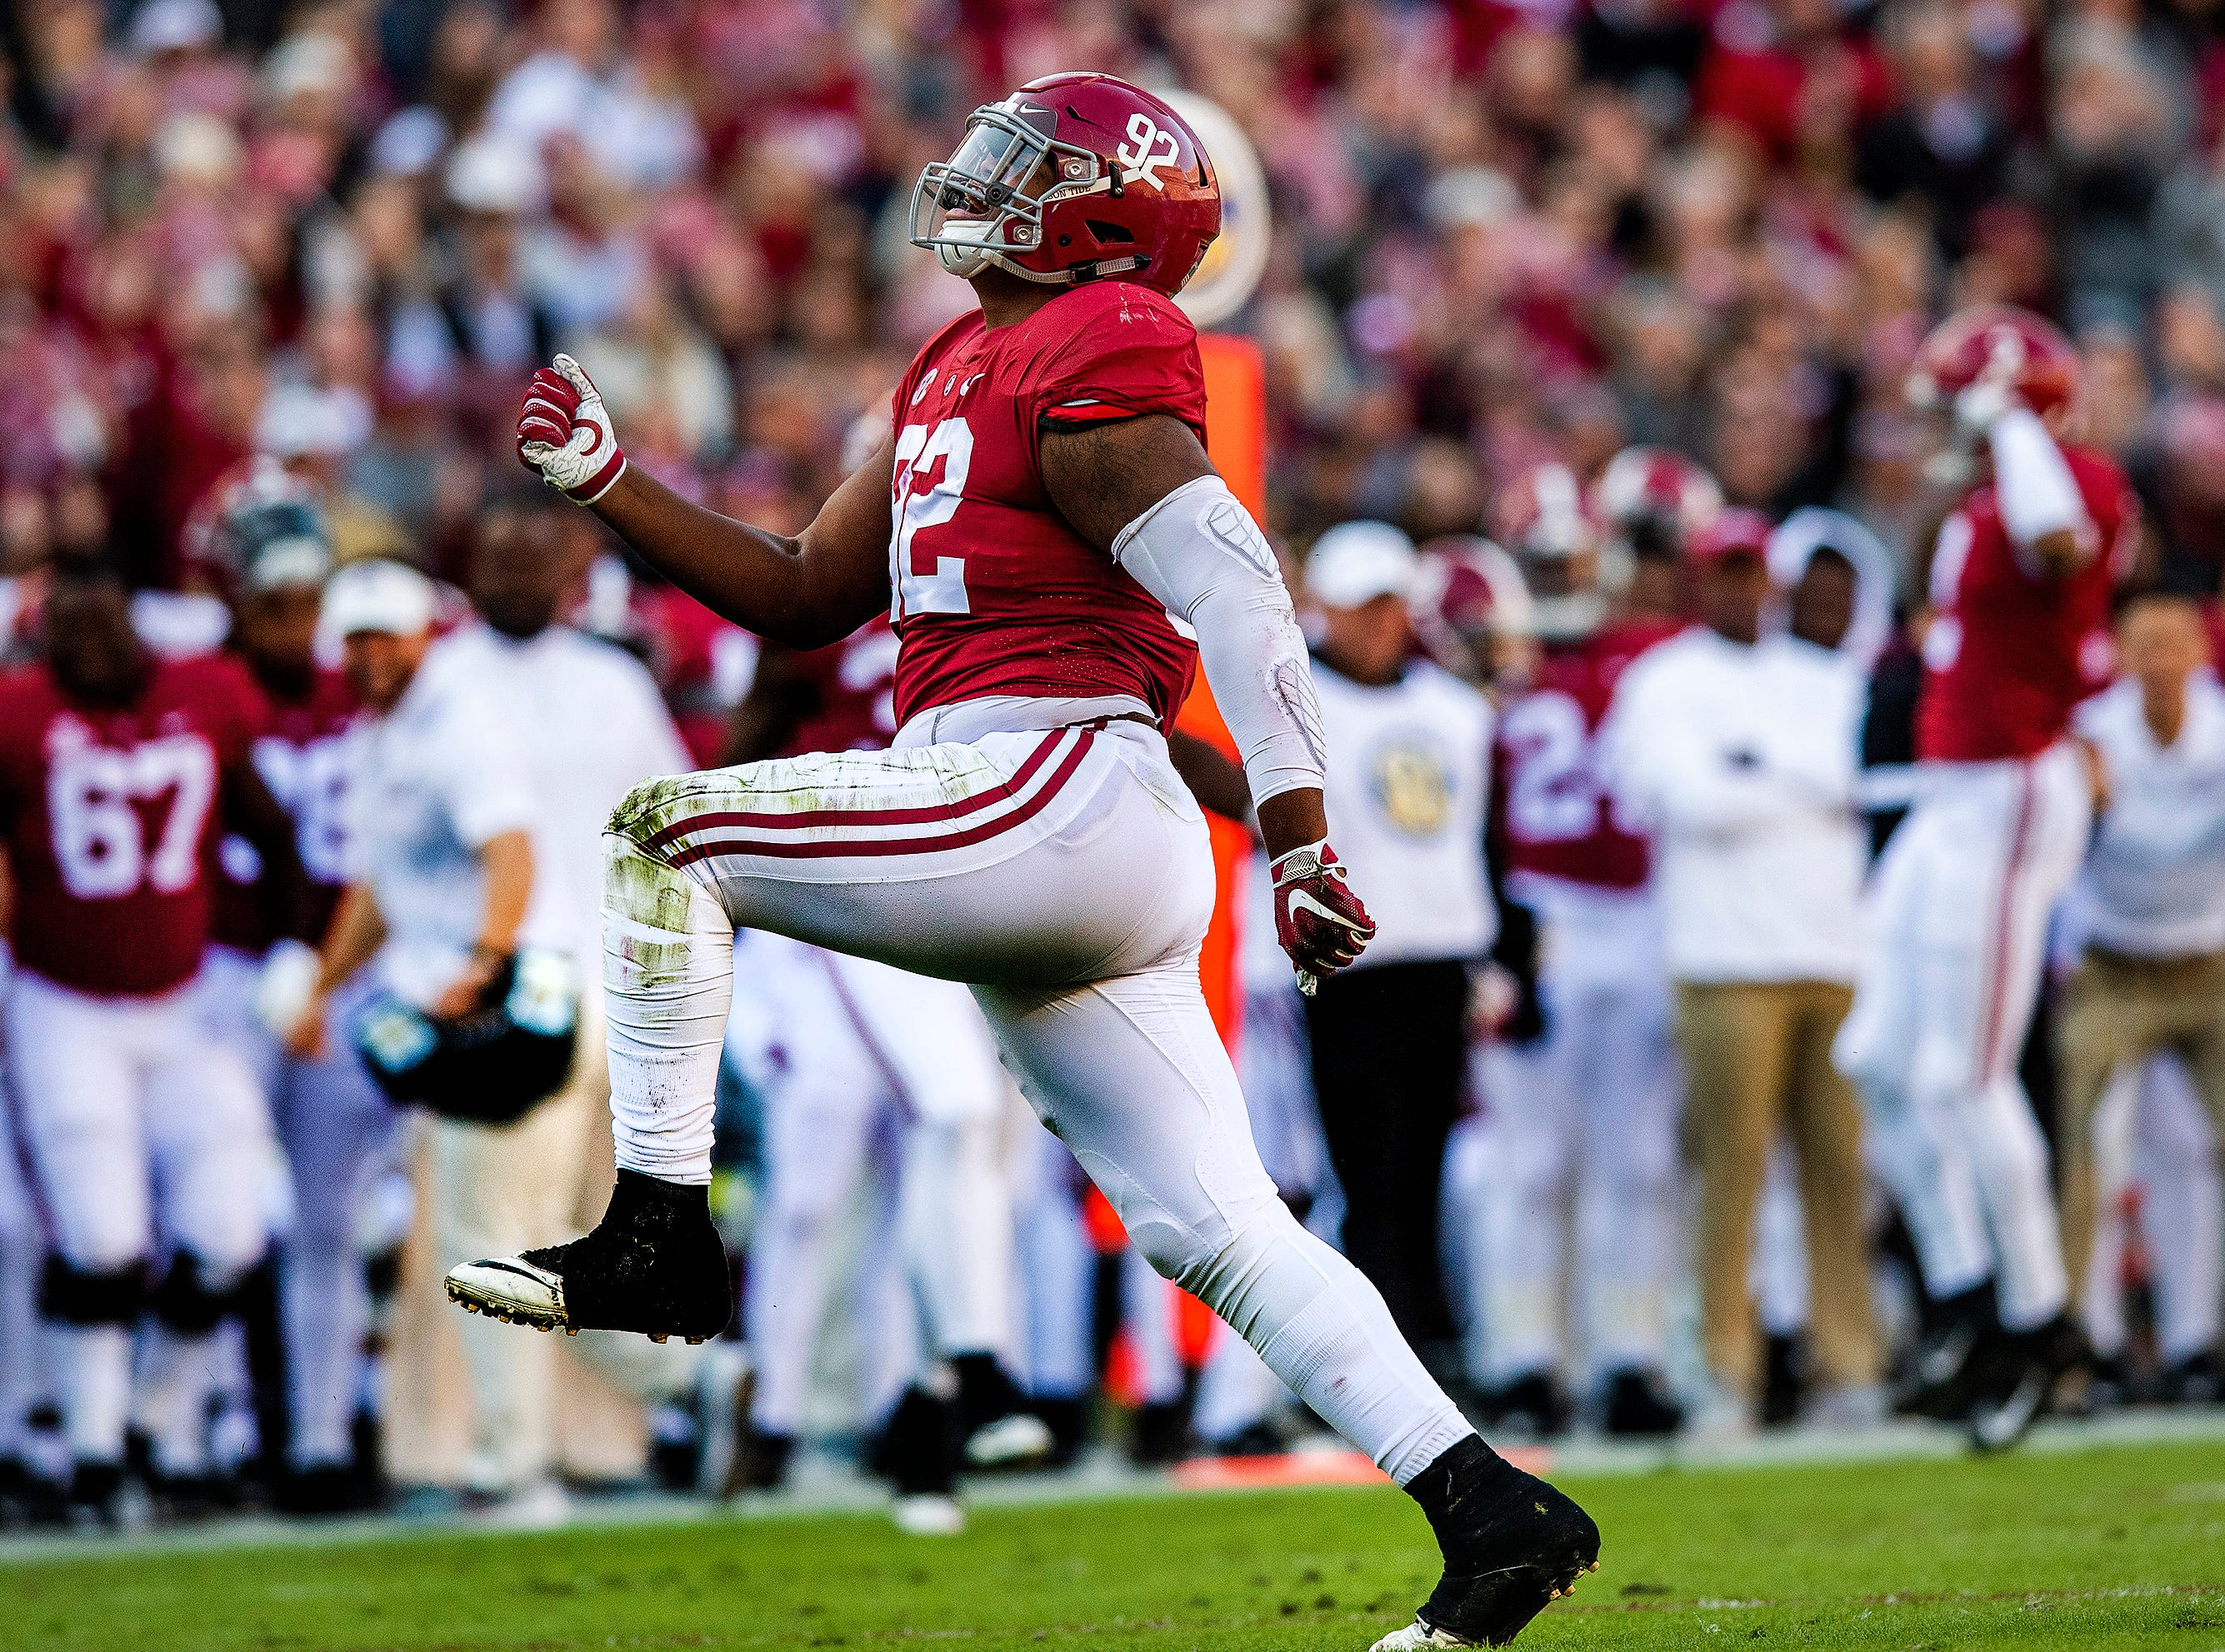 Alabama defensive lineman Quinnen Williams (92) celebrates a sack against Mississippi State University in first half action at Bryant Denny Stadium in Tuscaloosa, Ala., on Saturday November 9, 2018.